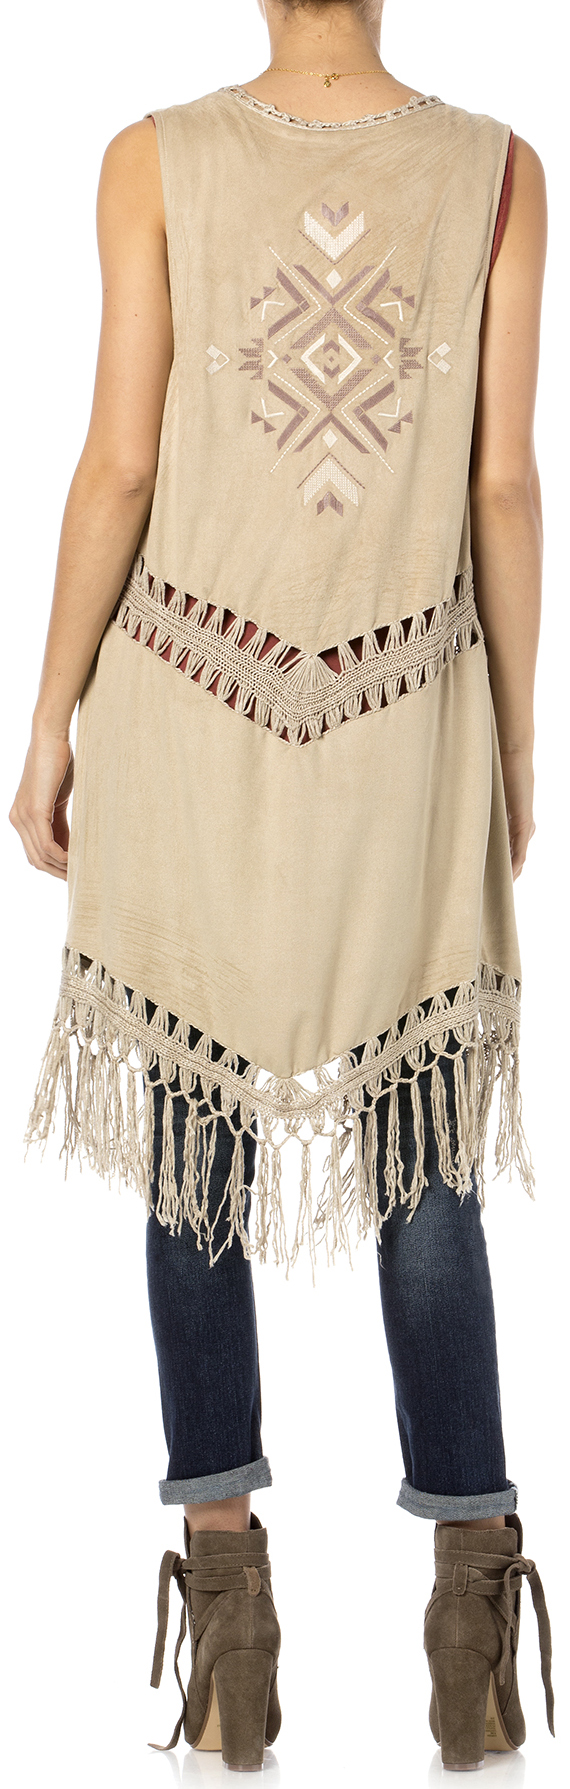 9dedcade201a Miss Me Women s Oh Mayan Fringe Vest - Country Outfitter